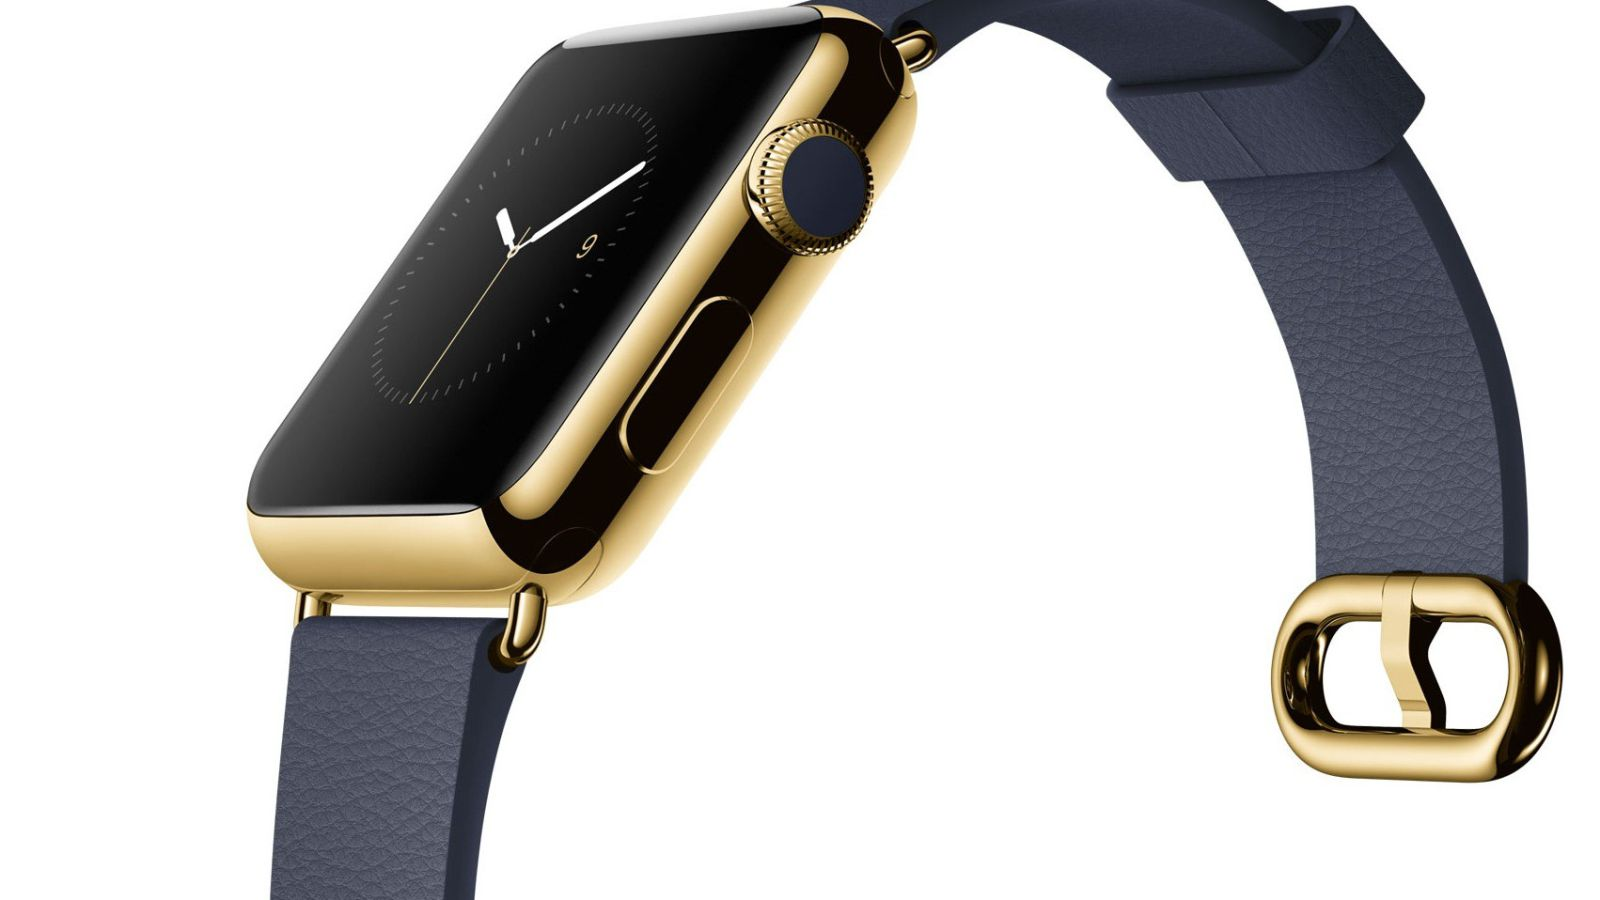 the-gold-apple-watch-may-be-sold-for-1200-928-76-458790-2